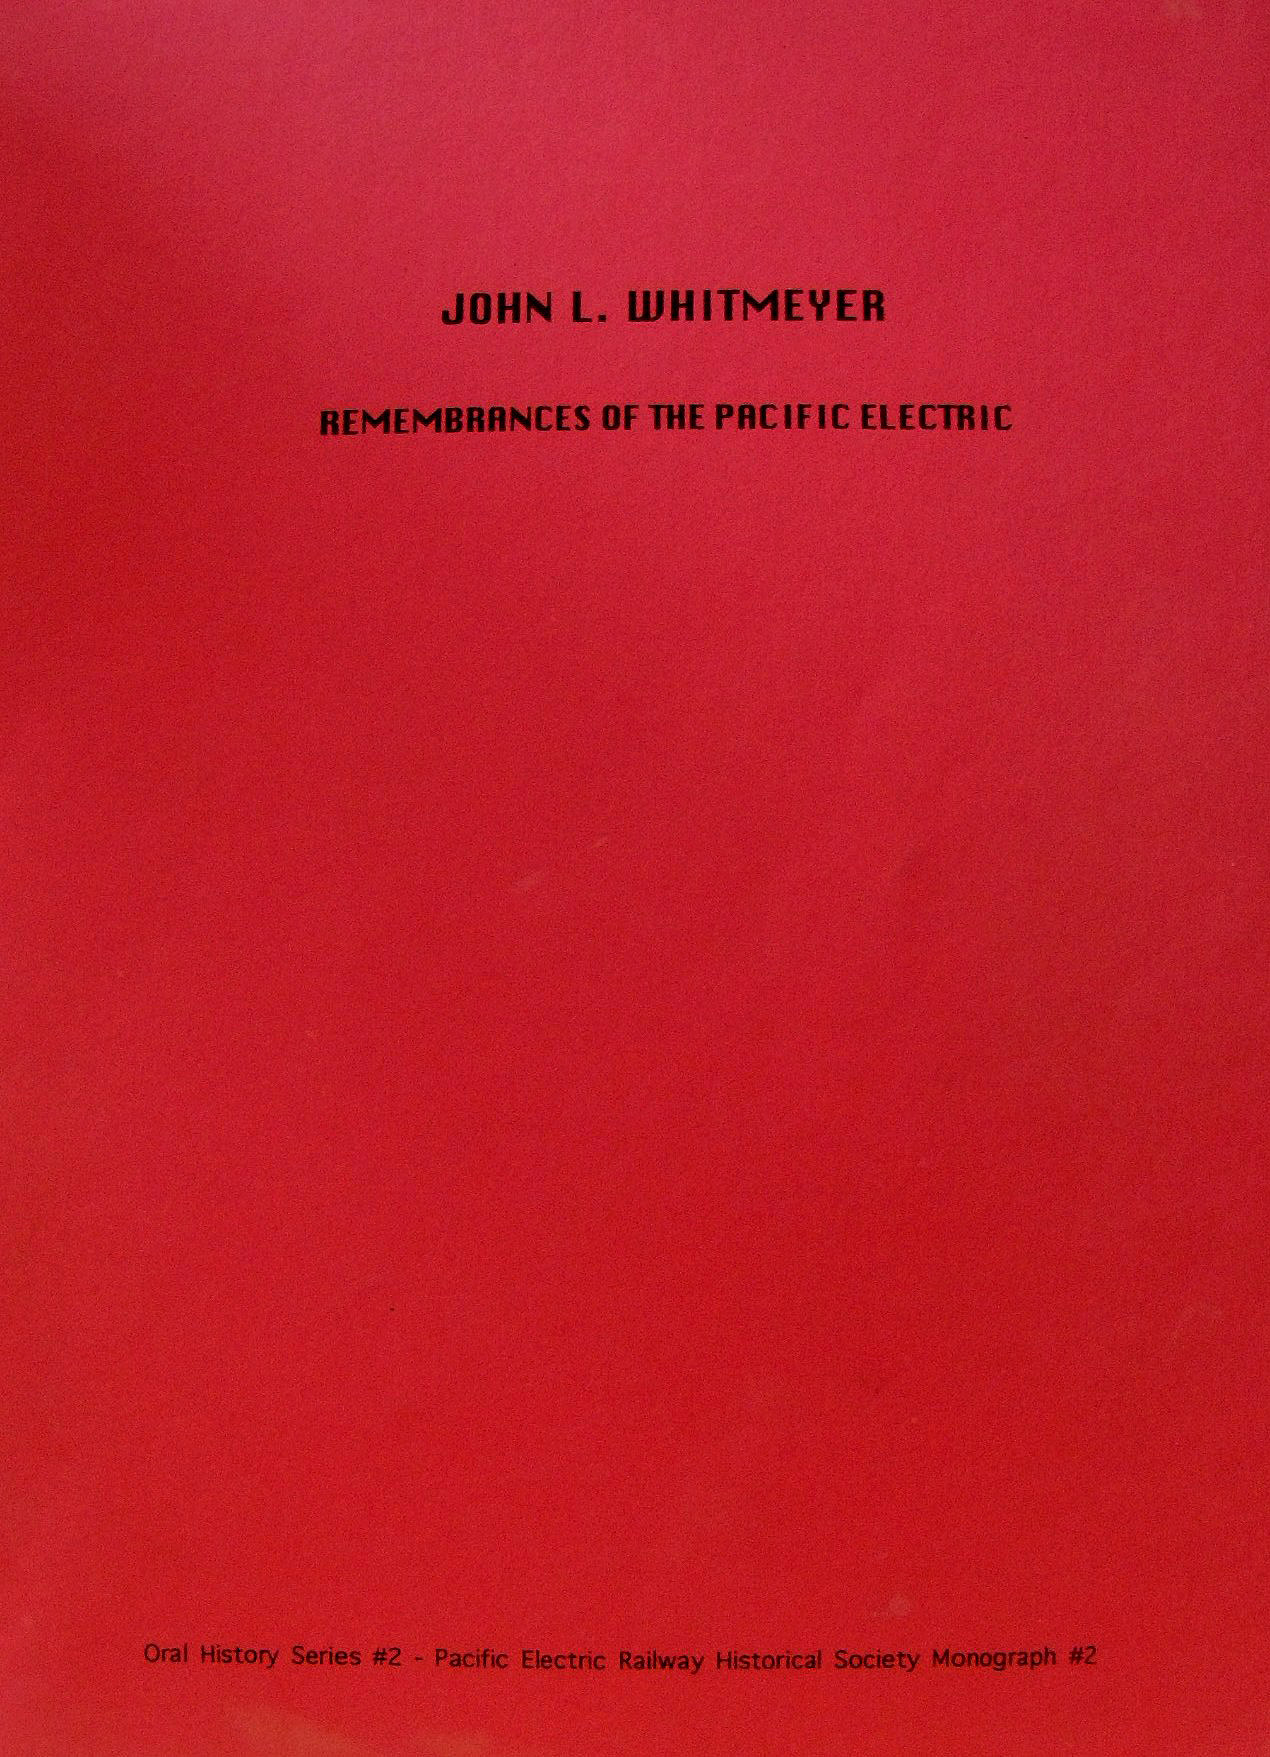 Monograph #2: John L. (Jack) Whitmeyer: Remembrances of the Pacific Electric